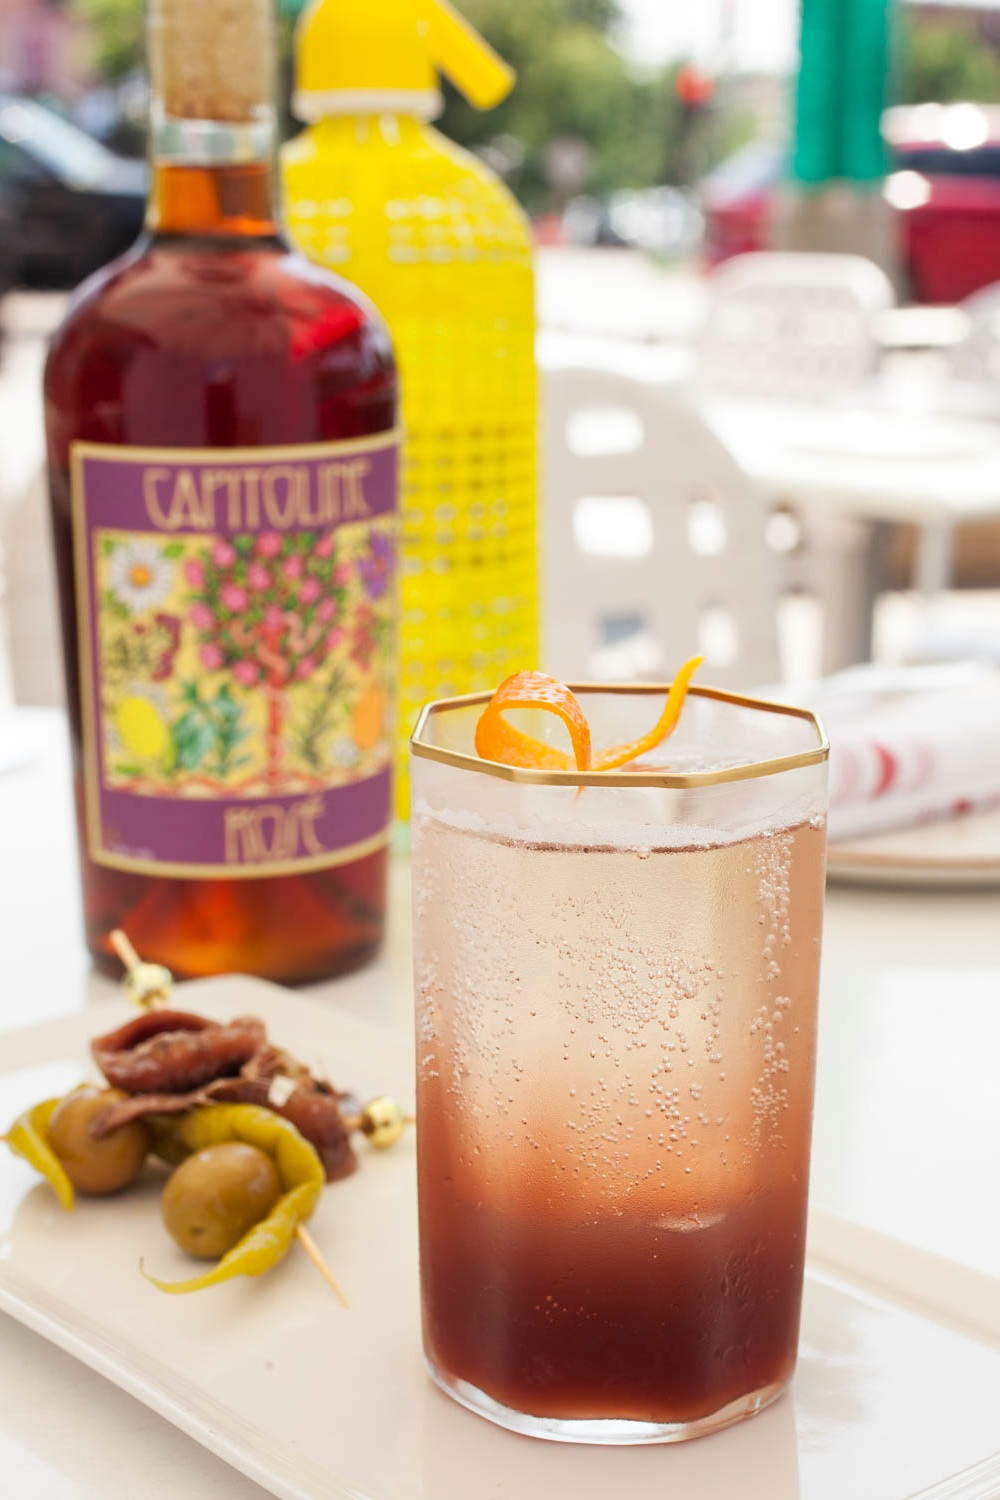 Rosé Vermouth and Soda - 2oz Capitoline Rosé over ice2oz seltzerGarnish with orange and green olive